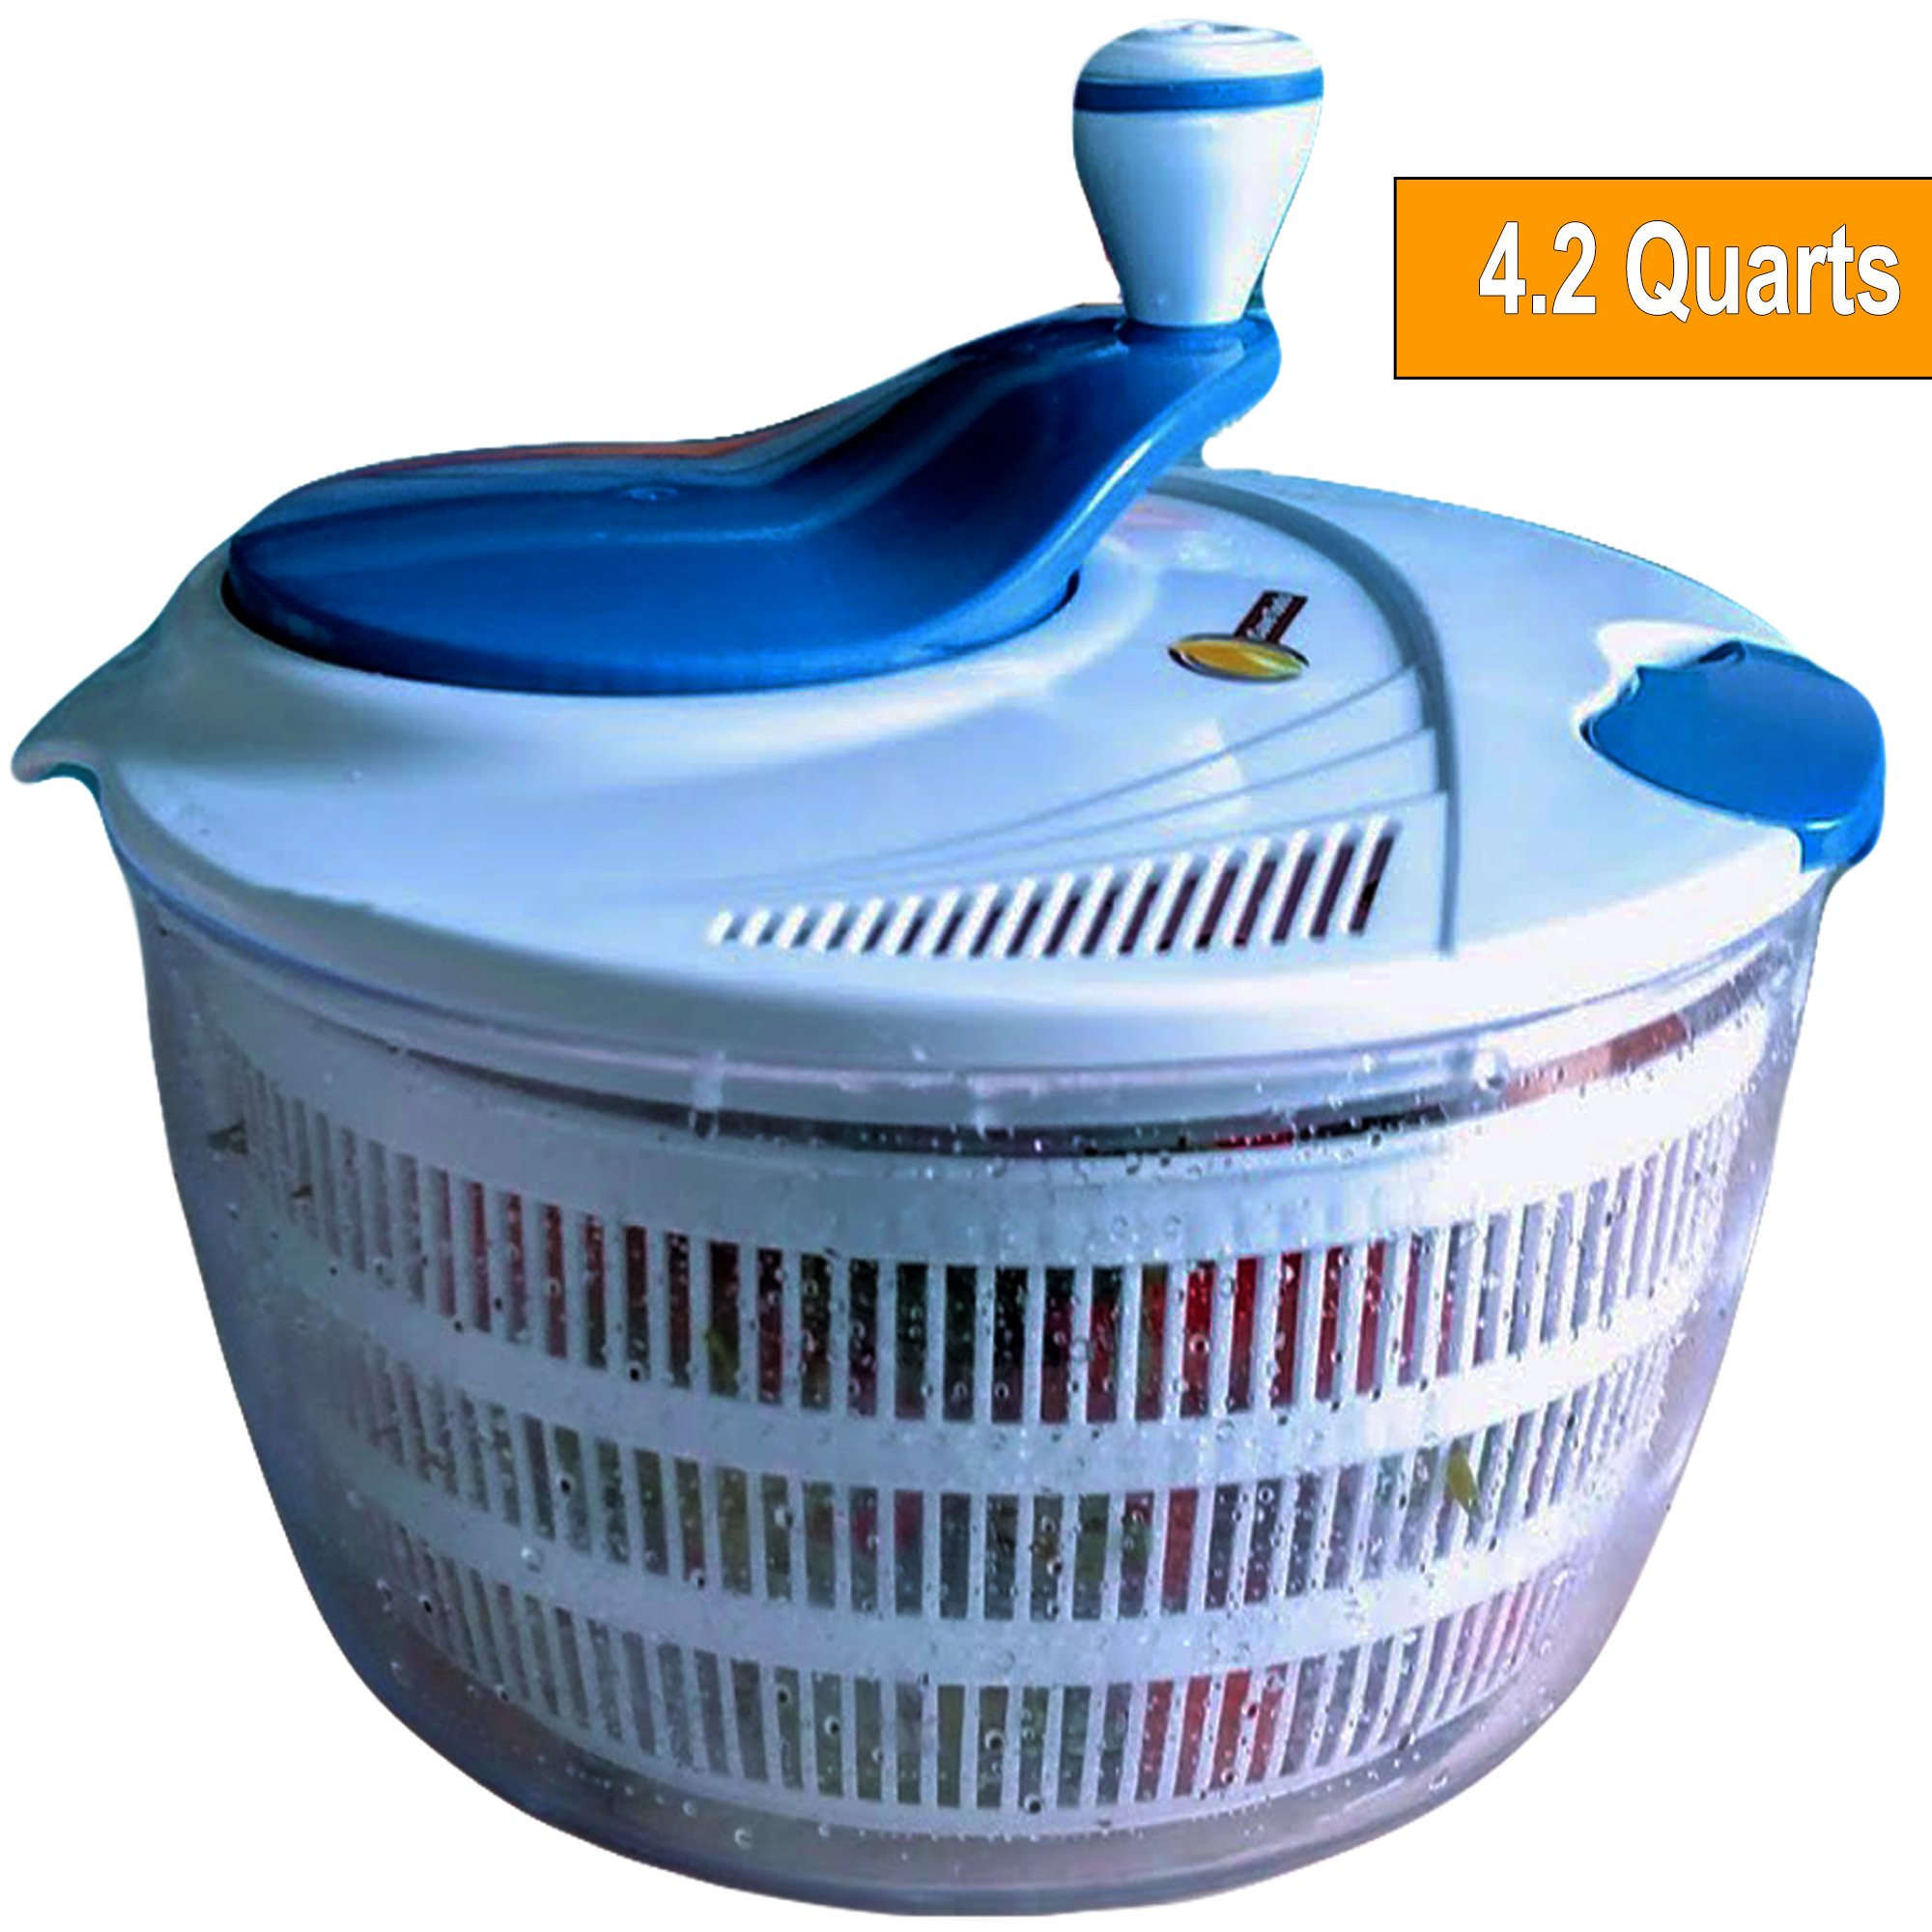 Salad Spinner Large 4.2 Quarts Serving Bowl Set - QUICK DRY DESIGN & DISHWASHER SAFE - BPA Free - No Pump Pull String or Cord Needed, Turn Knob Drys Fruits & Vegetables Fast - Cave Tools